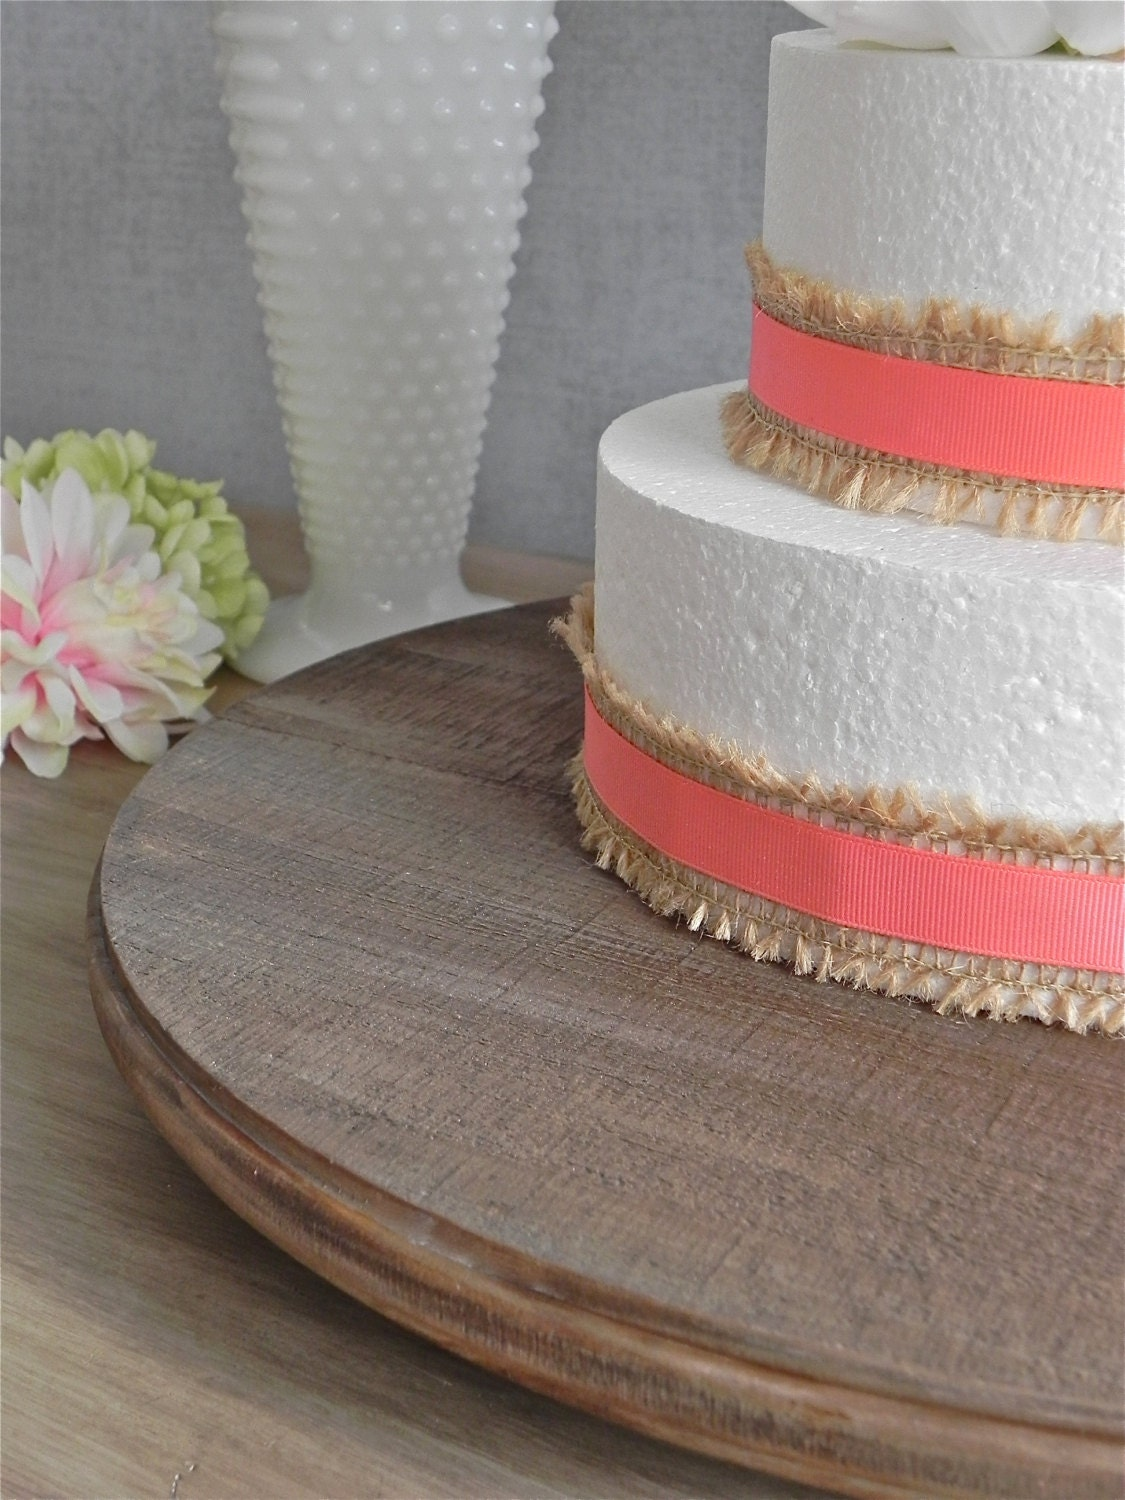 14 wedding cake stand round dark rustic wooden country